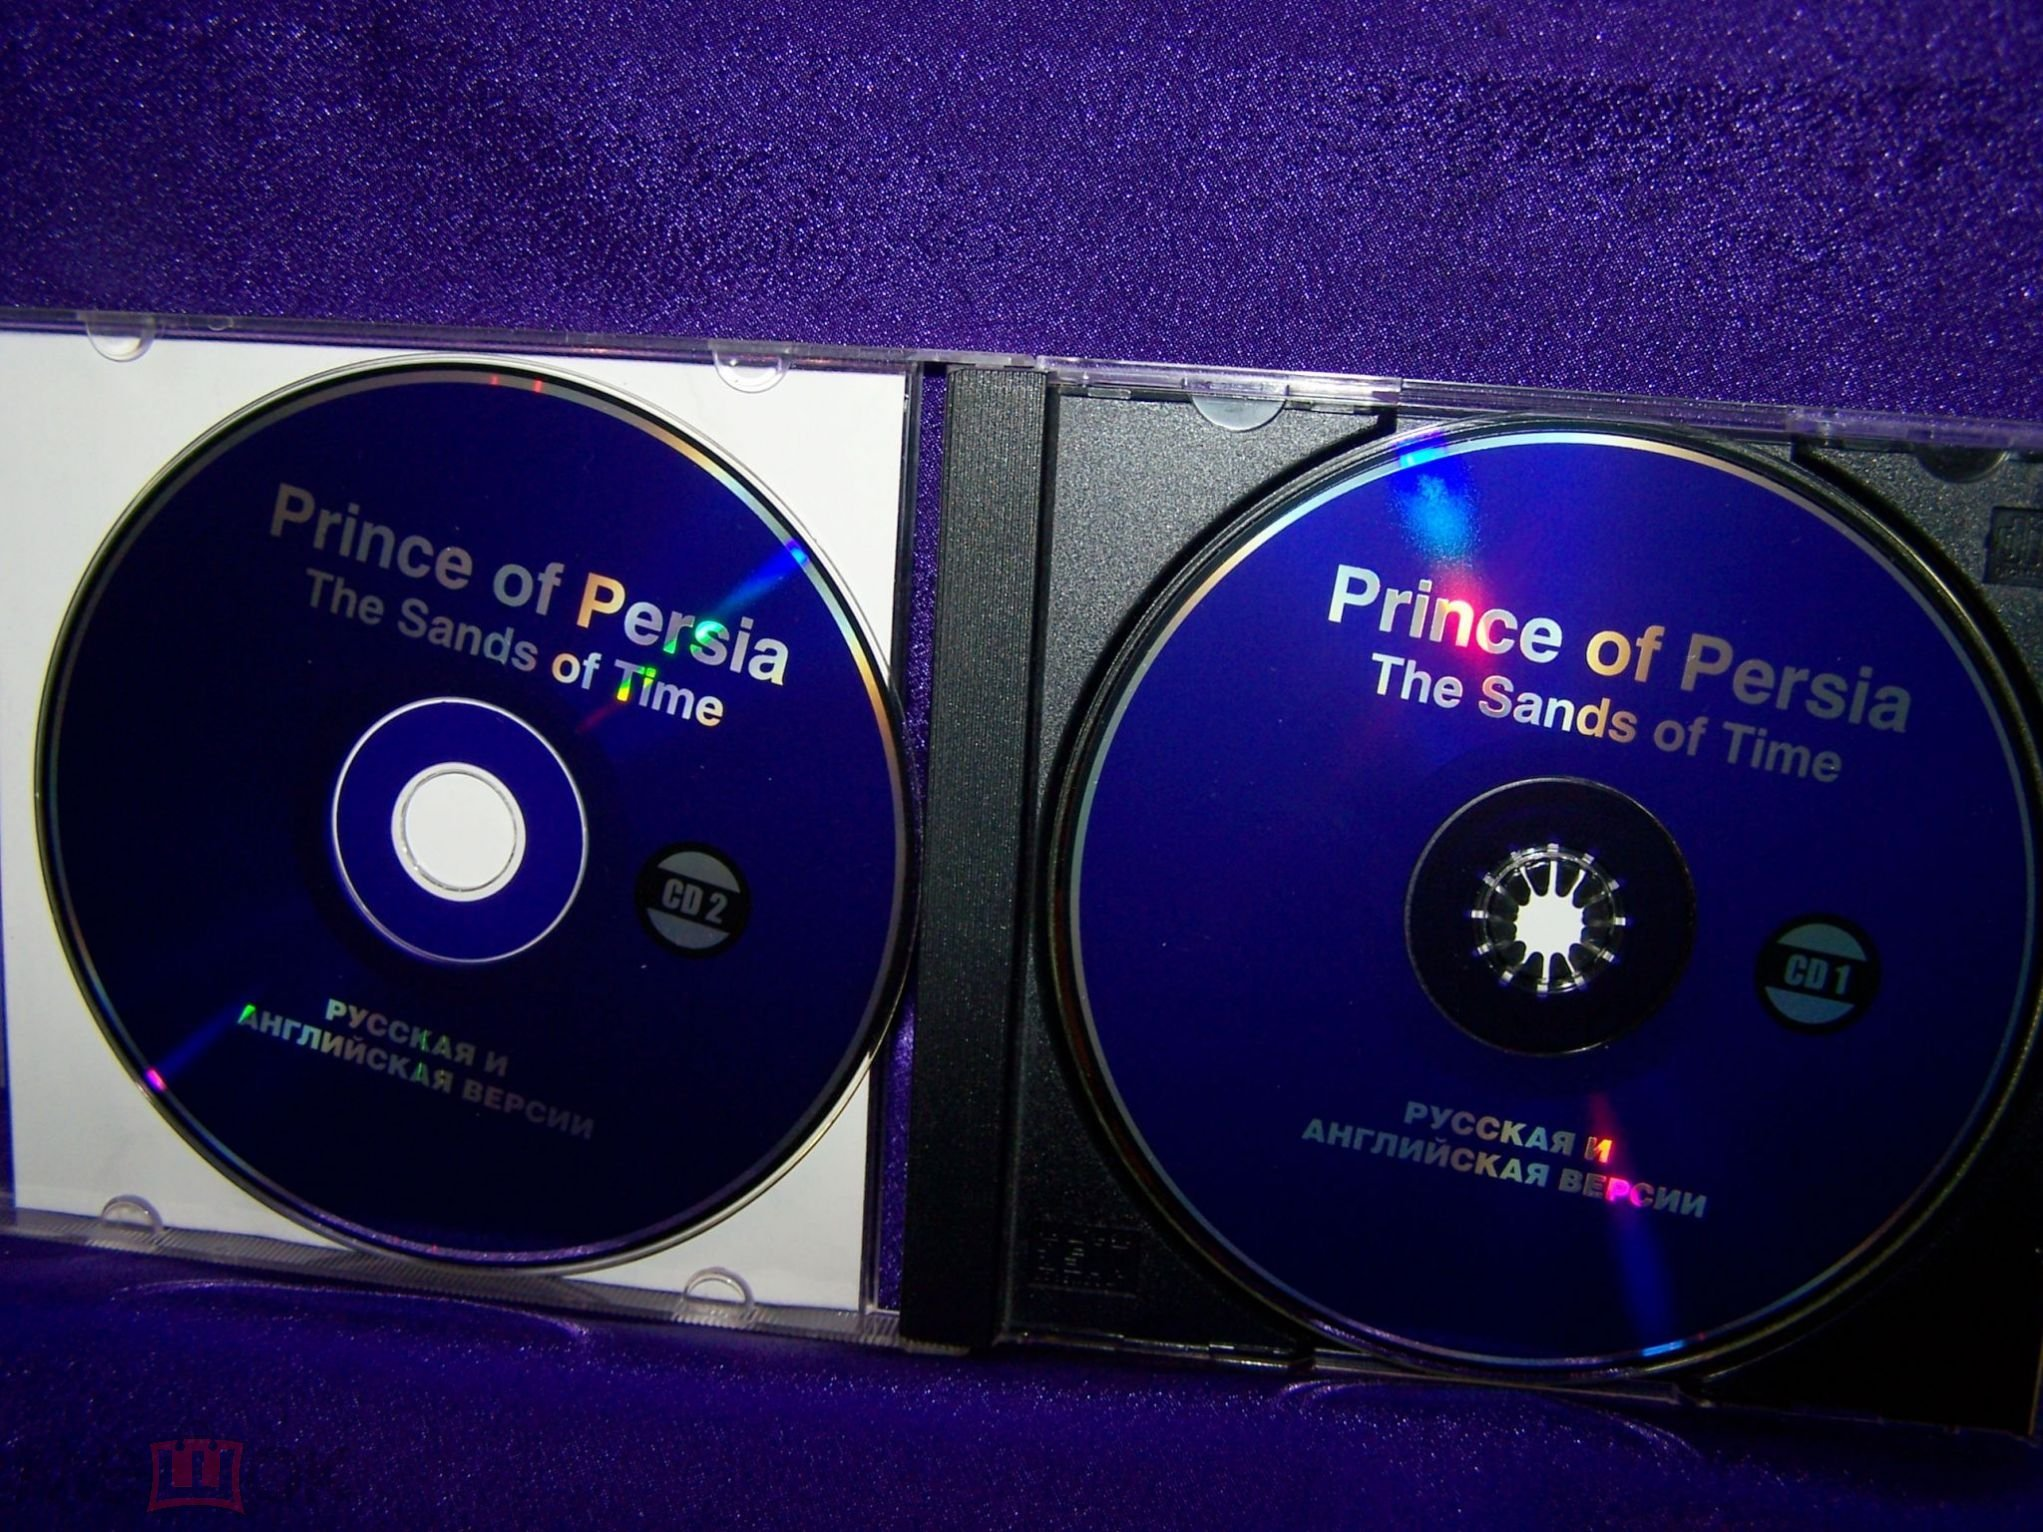 Prince of Persia. The Sands of Time (2 CD)